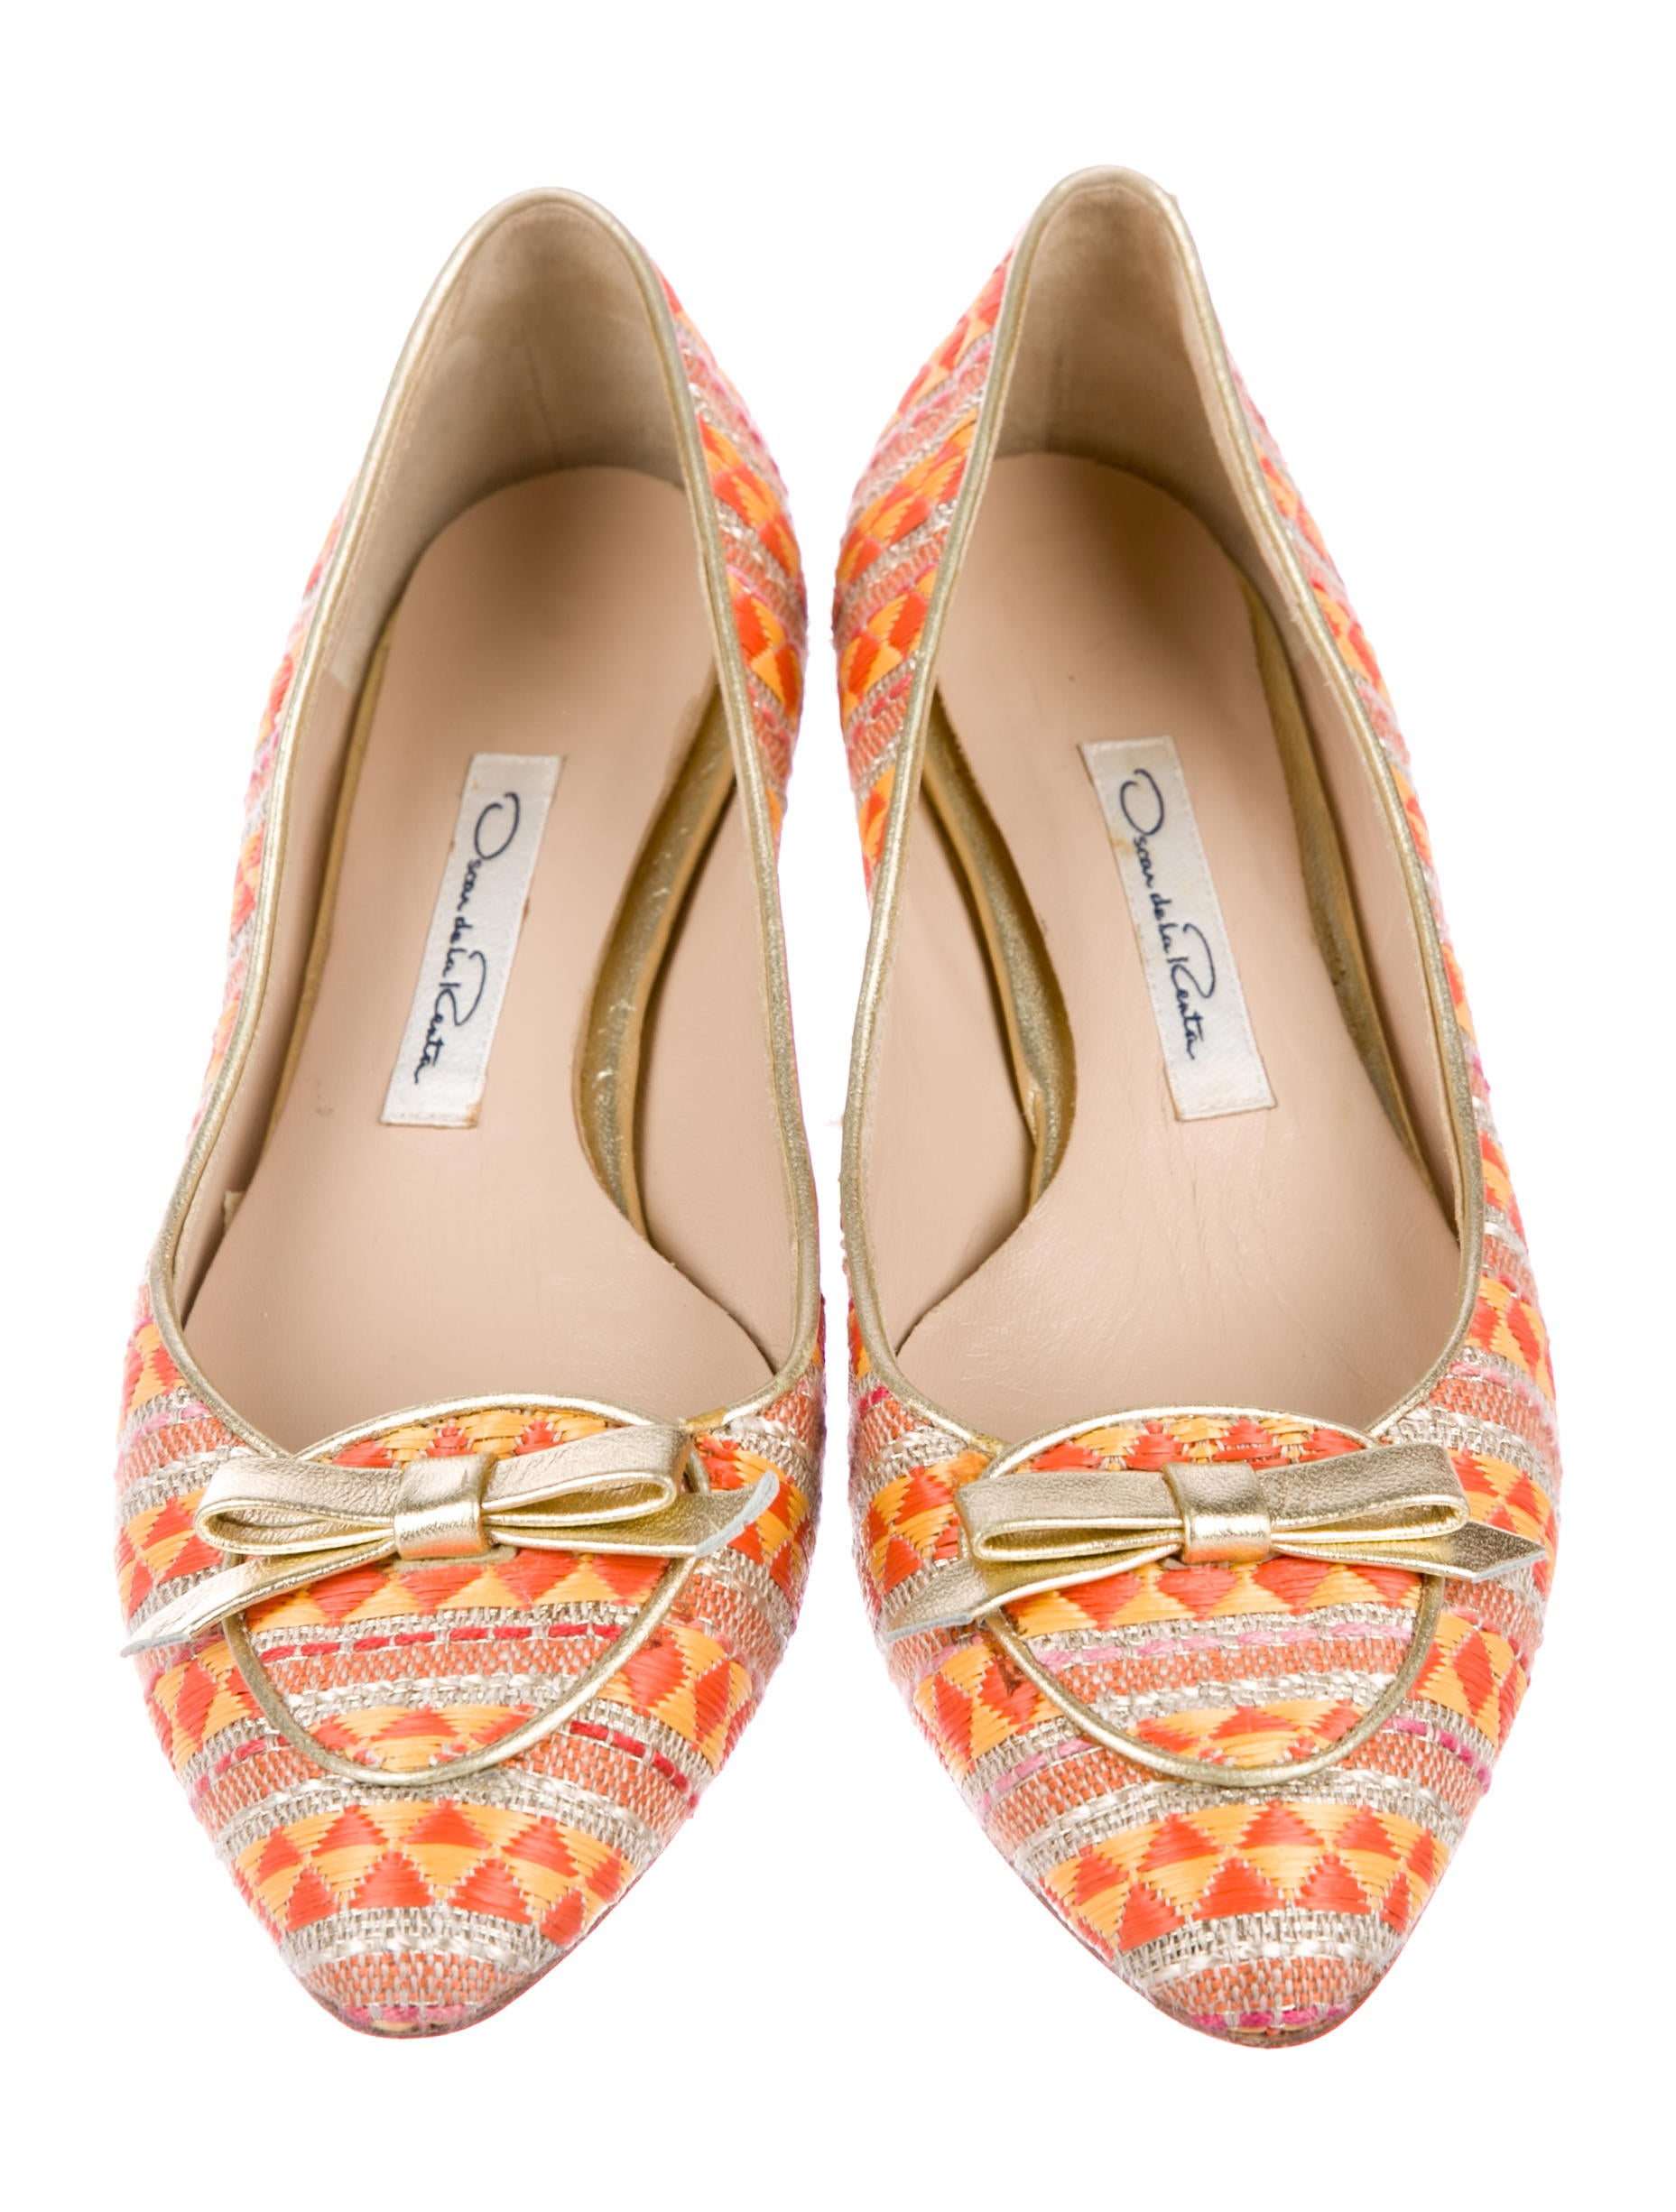 Oscar de la Renta Raffia Pointed-Toe Flats buy cheap footlocker finishline discount original IuKq52MK